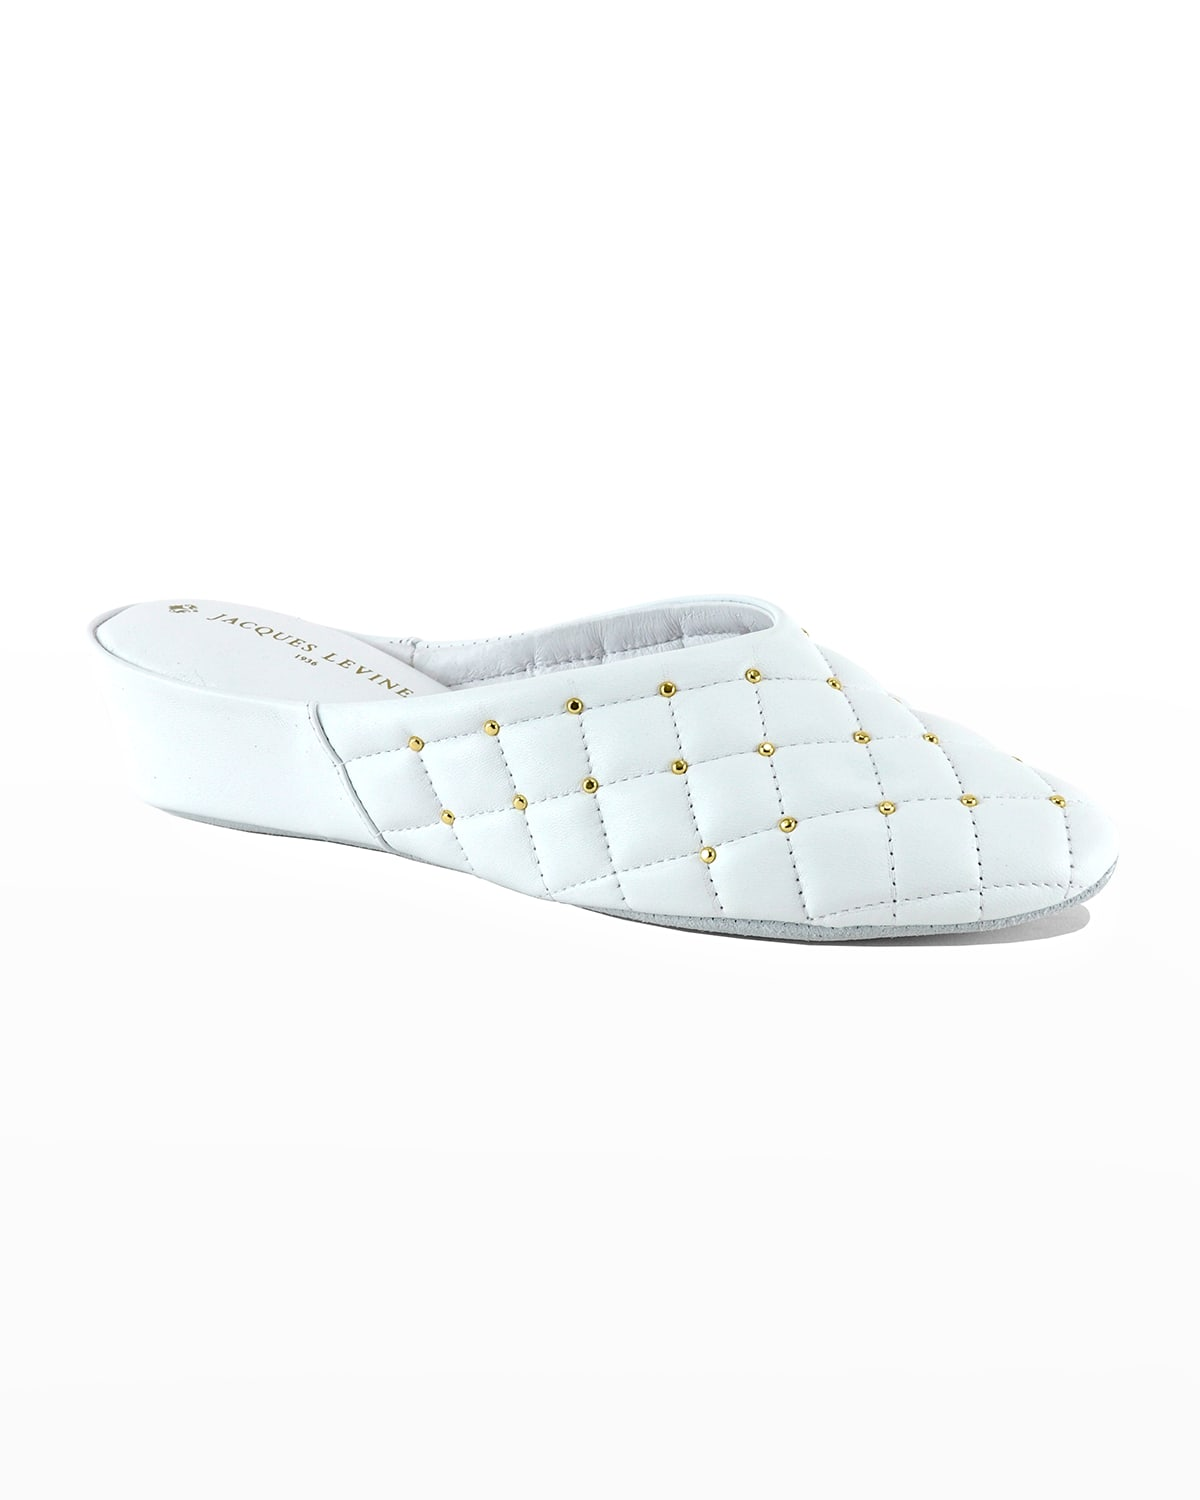 Quilted Leather Studded Slippers